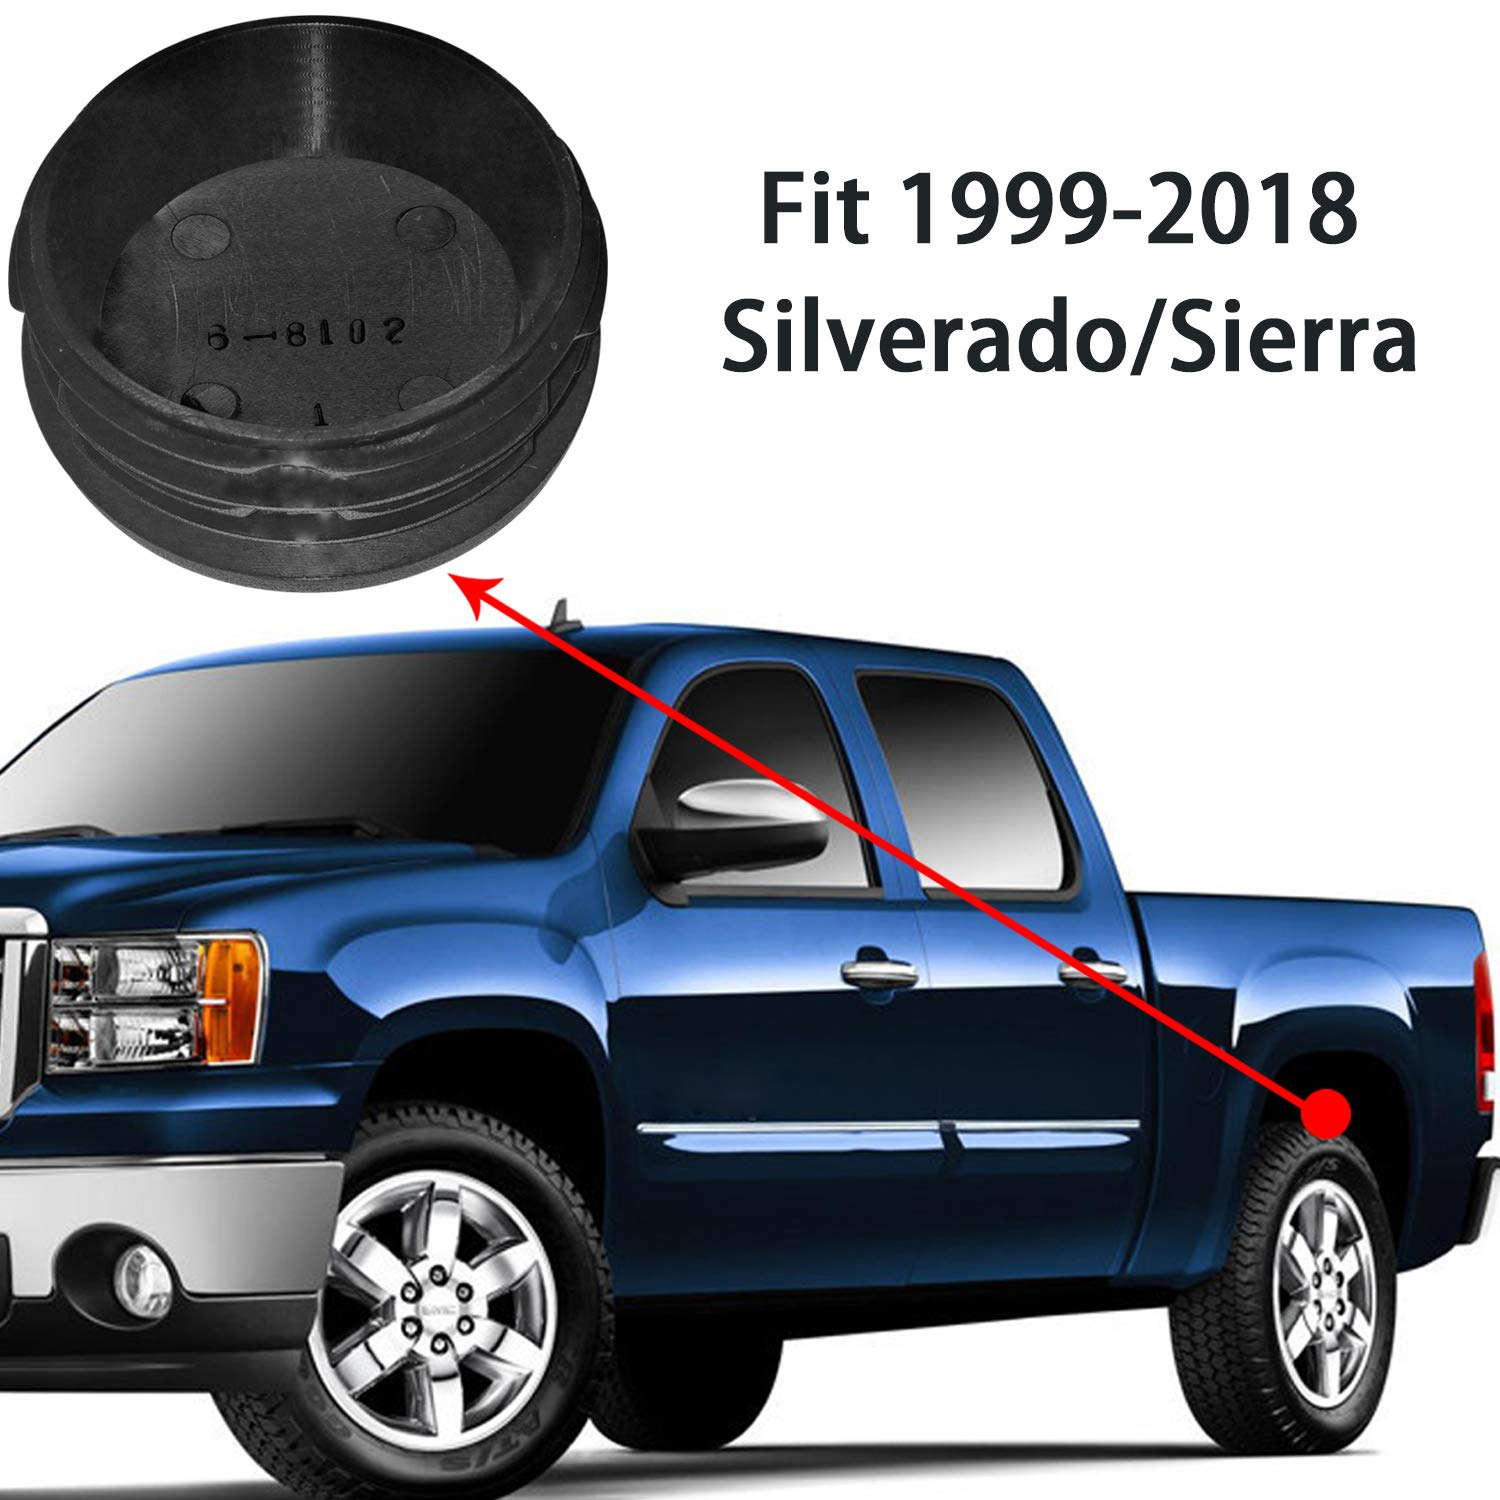 ZHUBANG Auto Frame Tube Hole Plugs Rear Wheel Well Covers Caps Rubber Car Accessories 4pcs Only for Chevy Silverado 1500 GMC Sierra 1500 1999-2018